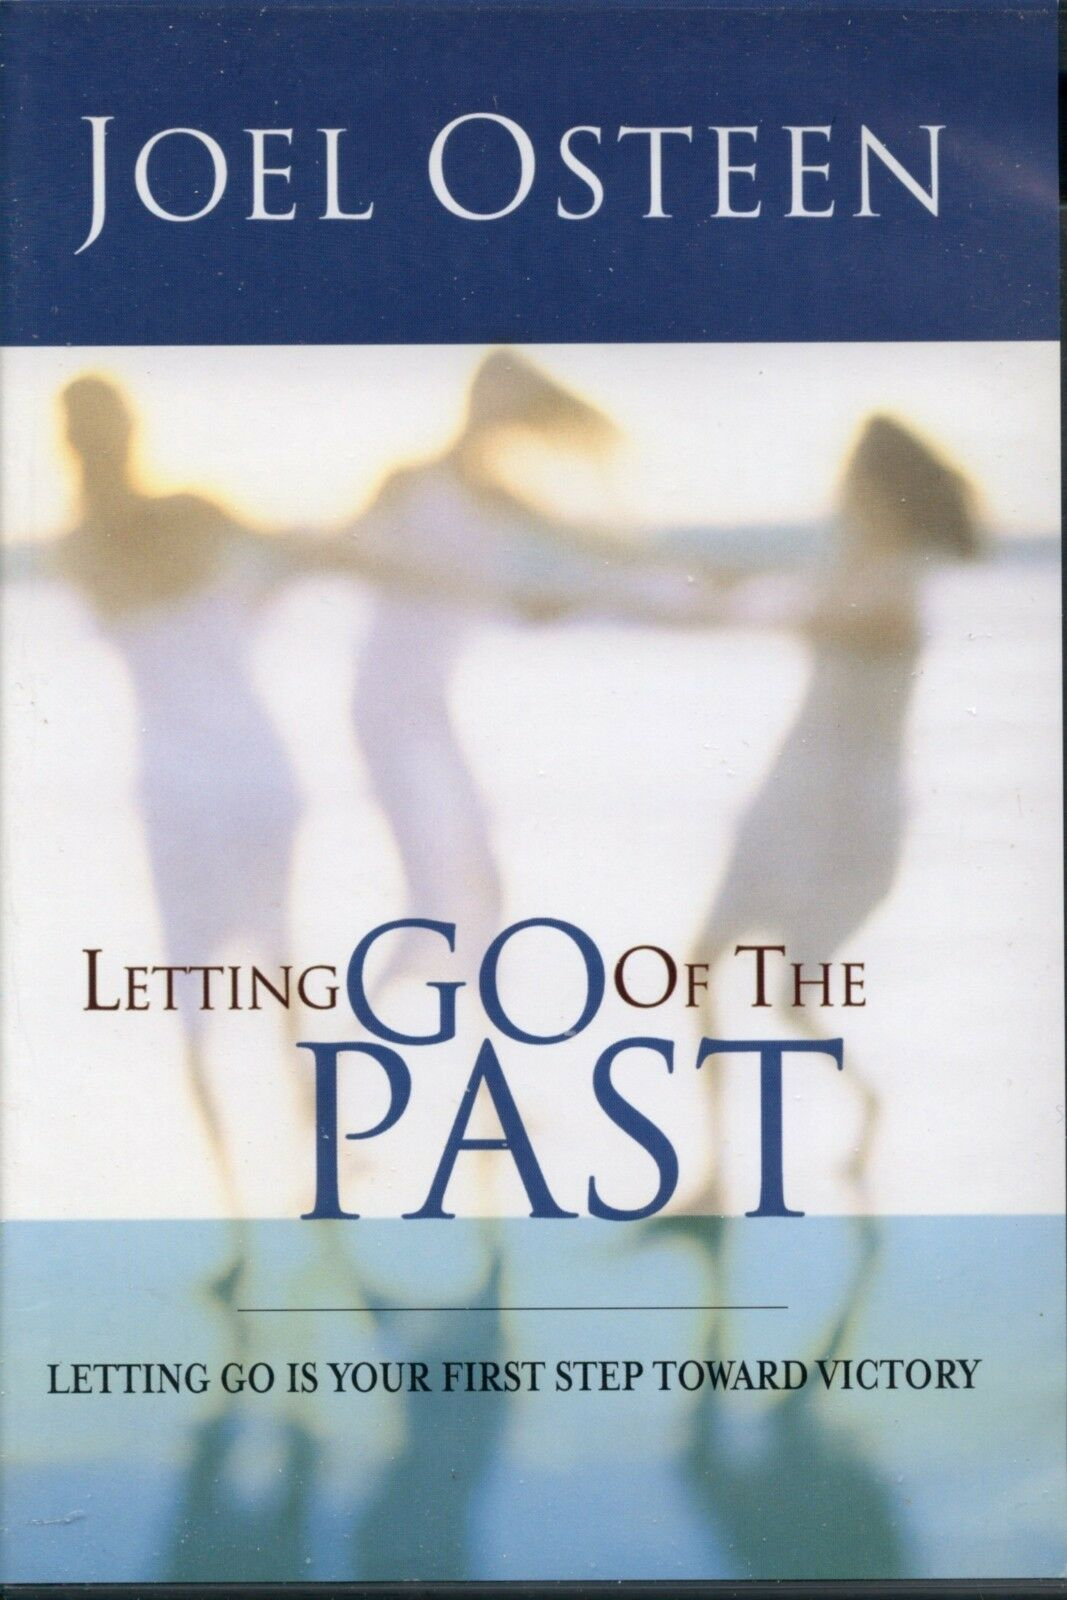 Joel Osteen Letting Go Of The Past 2 Cd Set 2002 9781931877367 Ebay